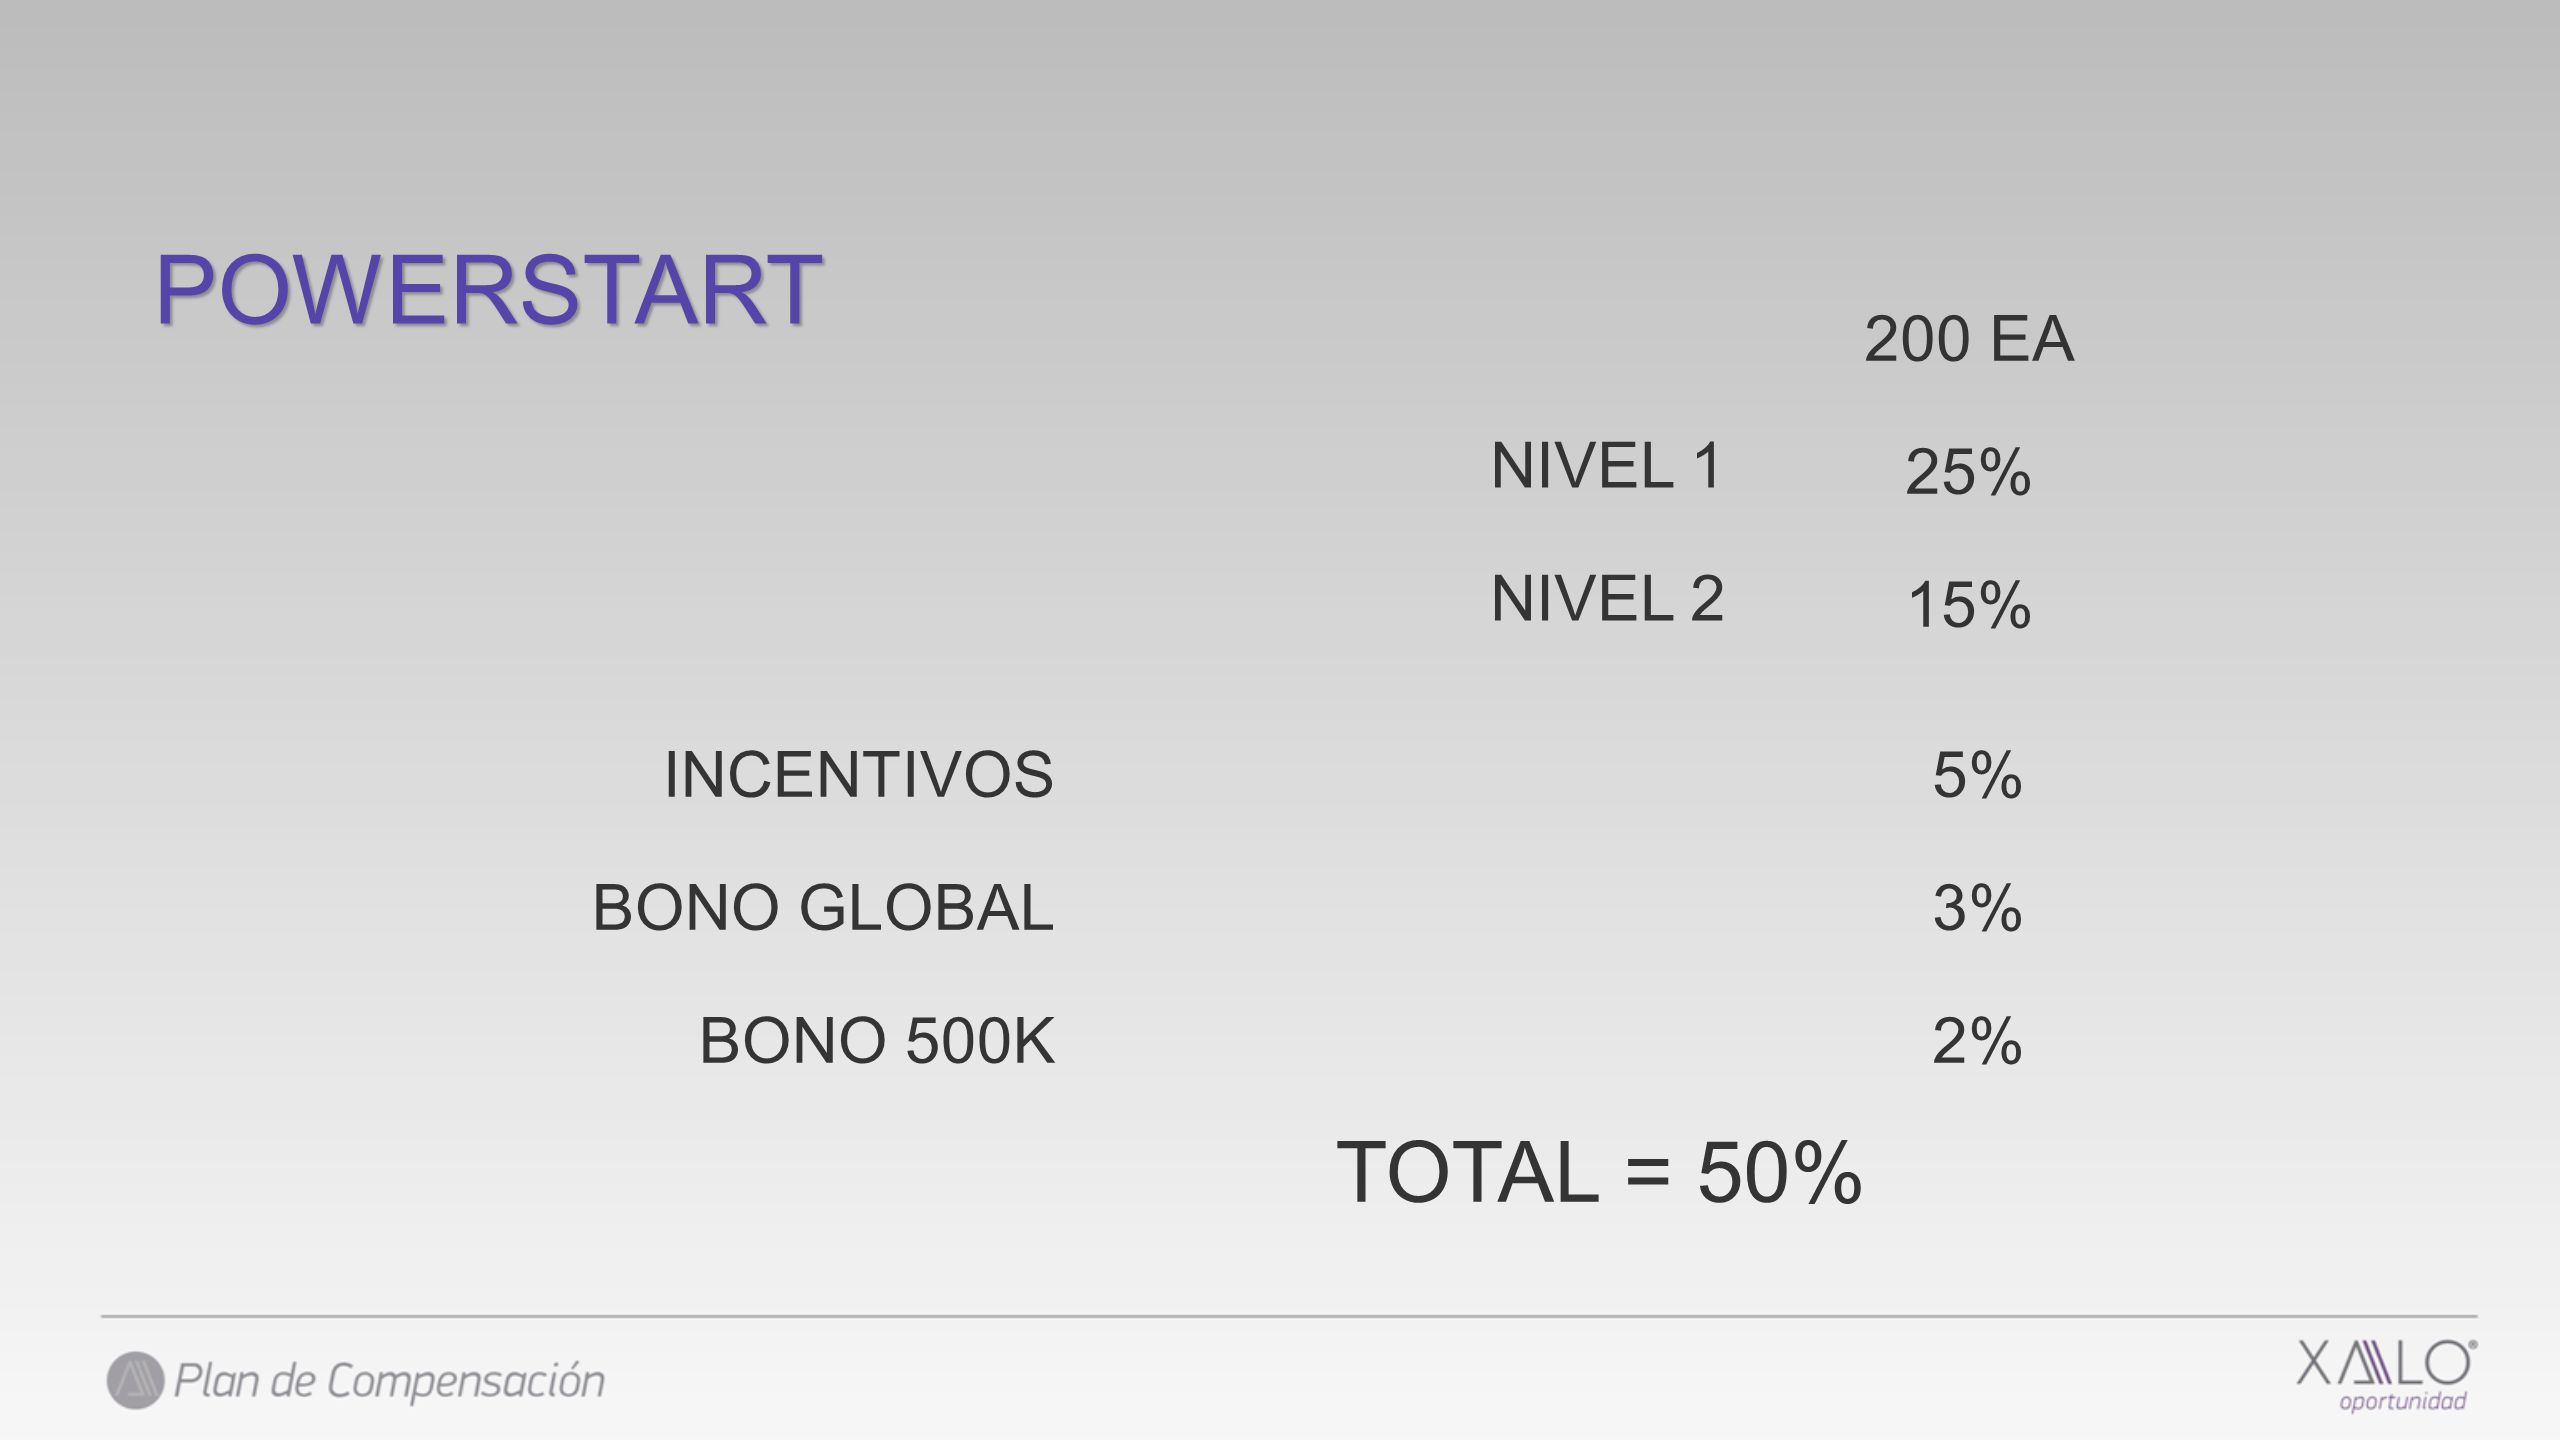 POWERSTART TOTAL = 50% 200 EA 25% 15% NIVEL 1 NIVEL 2 INCENTIVOS